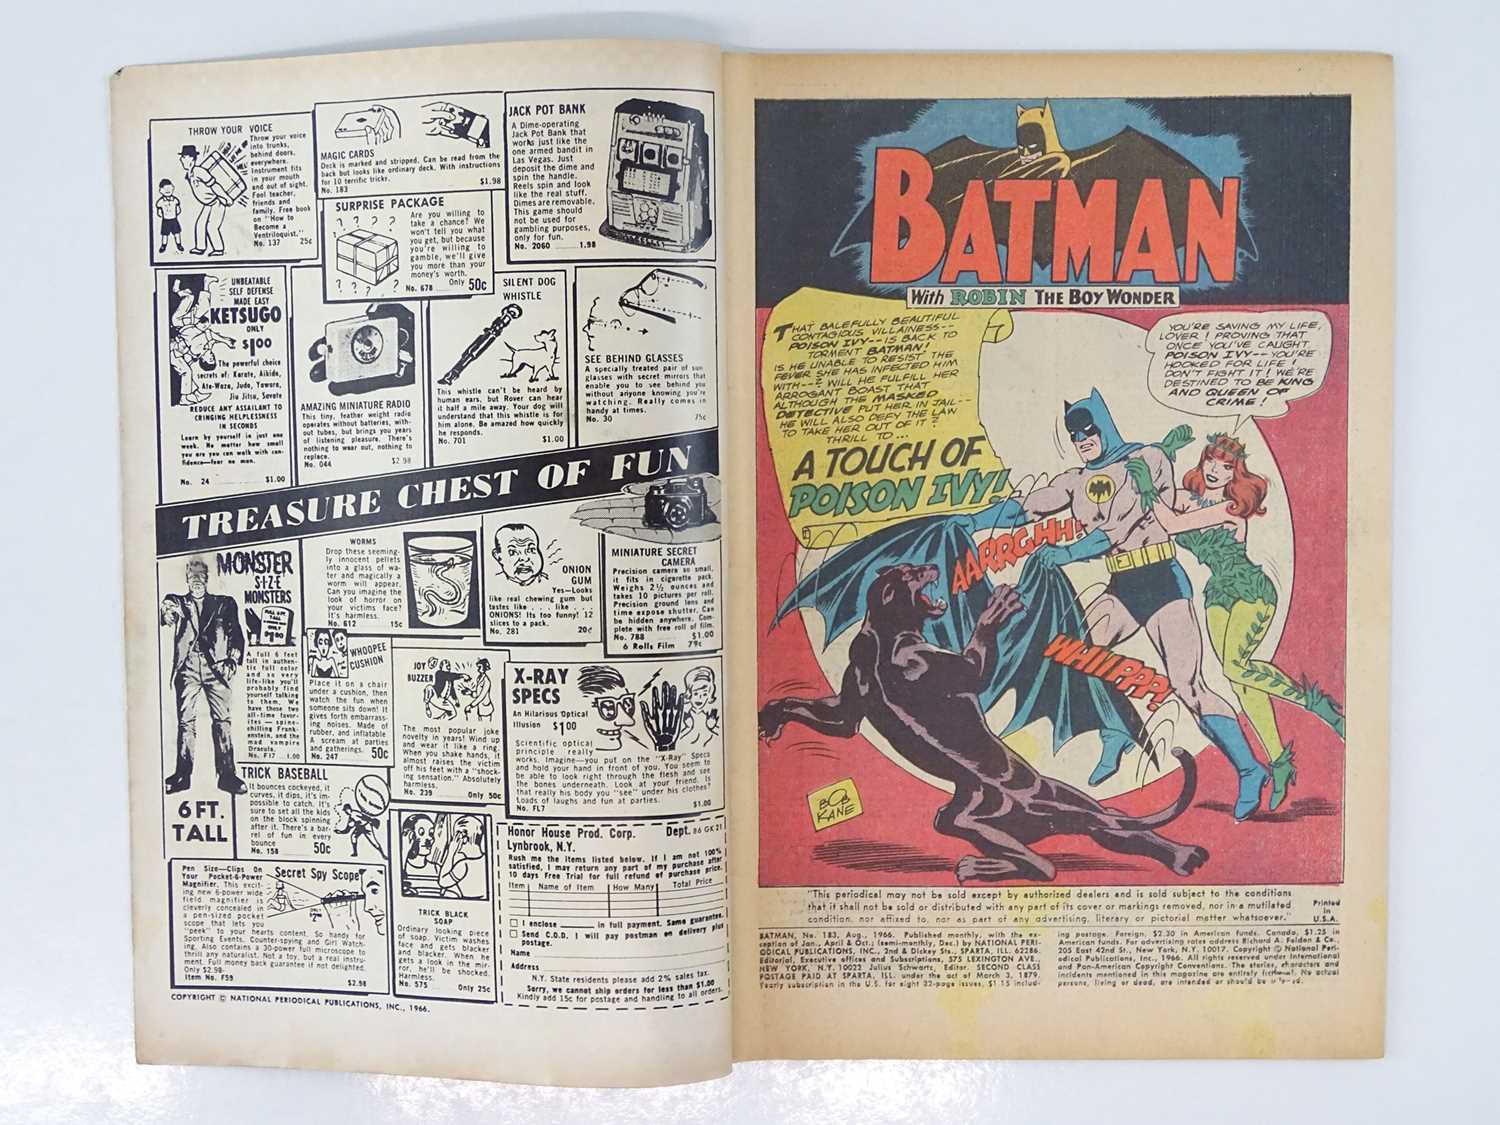 BATMAN #183 - (1966 - DC - Uk Cover Price) - Second appearance of Poison Ivy - Carmine Infantino & - Image 3 of 9